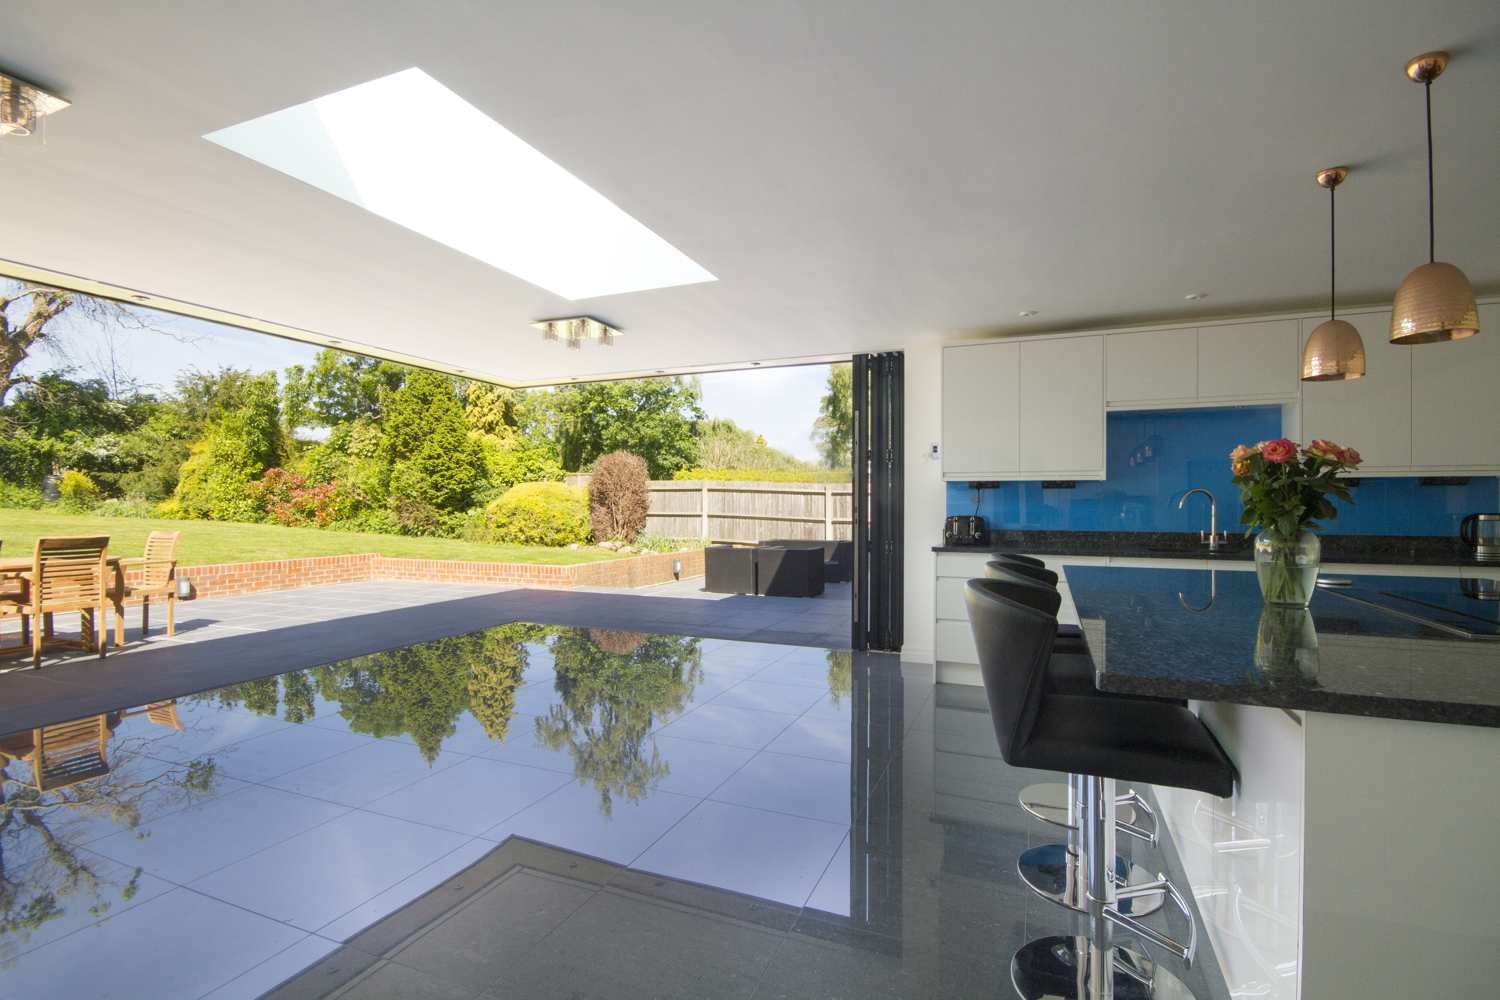 Case Study - A stunning Surrey kitchen